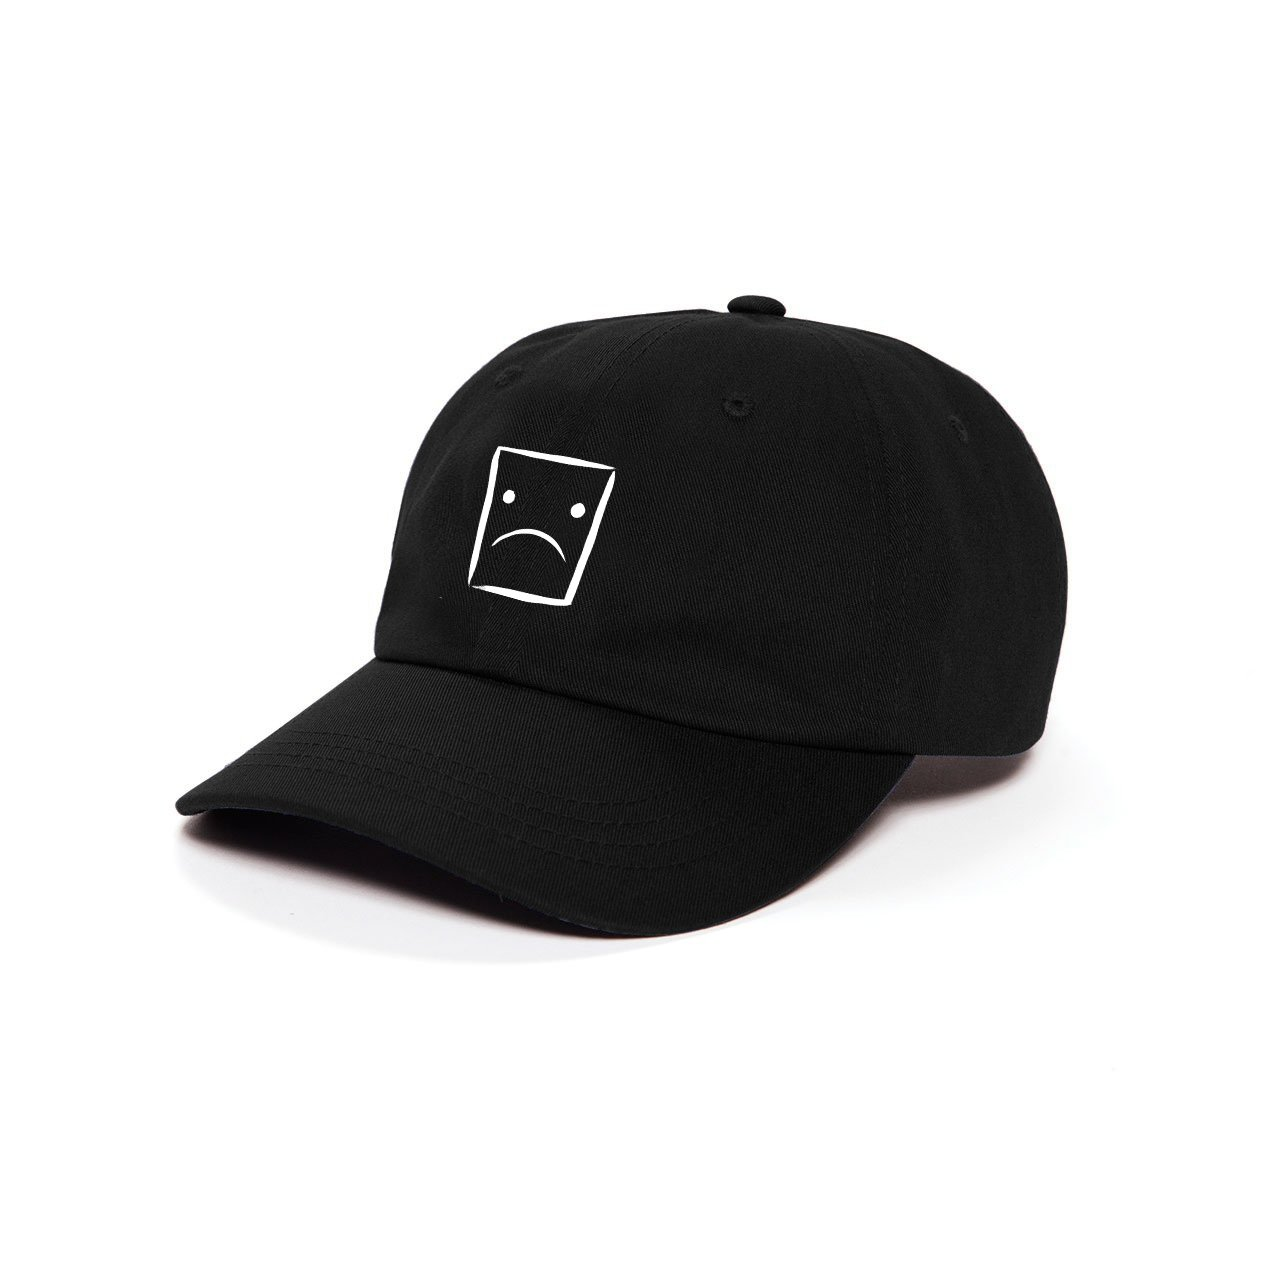 wb-dad-hat-official_2000x.jpg